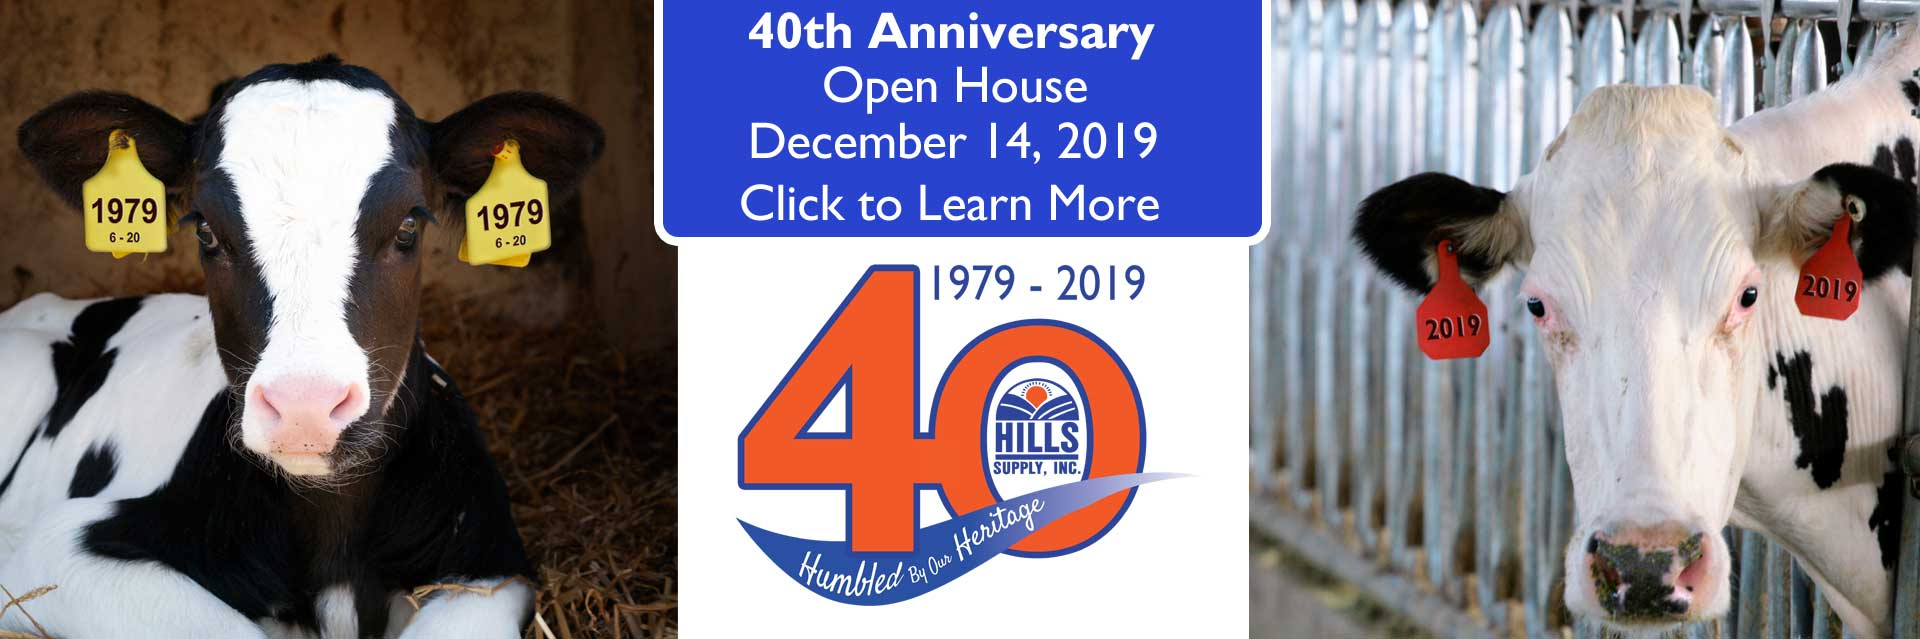 Hills Supply 40th Anniversary Open House